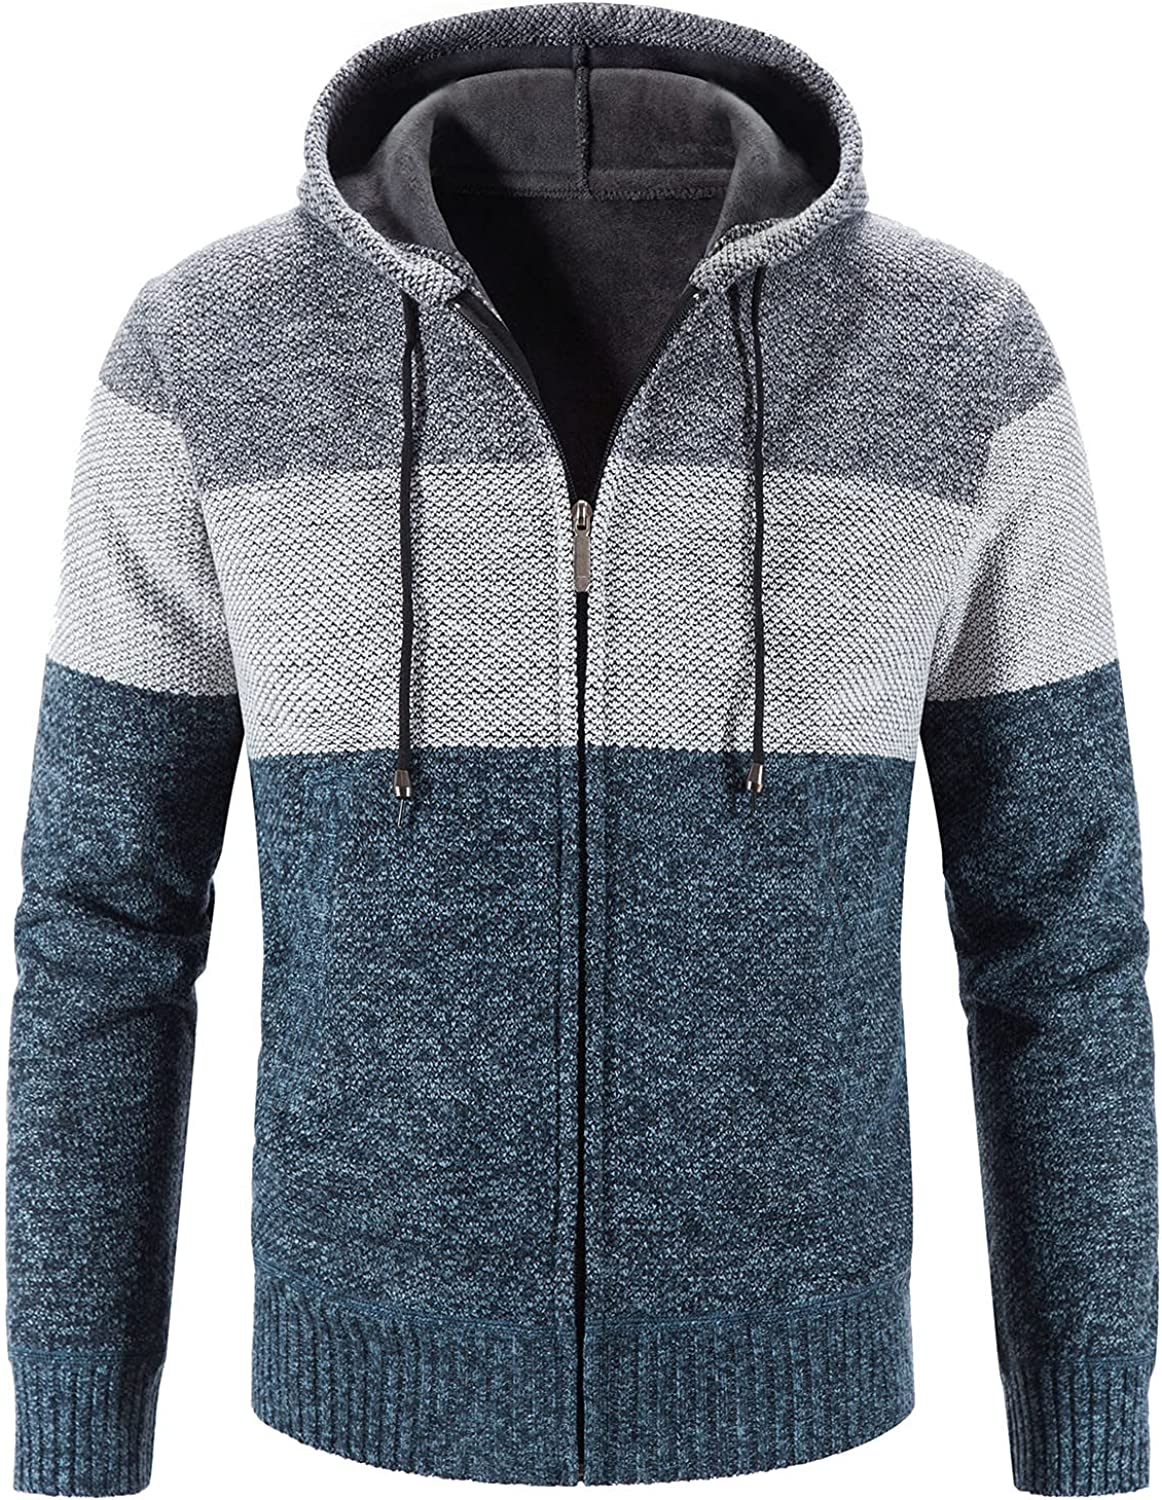 Fashion Outwear for Men, Fashion Patchwork Color Block Full Zipped Sweatshirt Casual Long Sleeve Hooded Coat